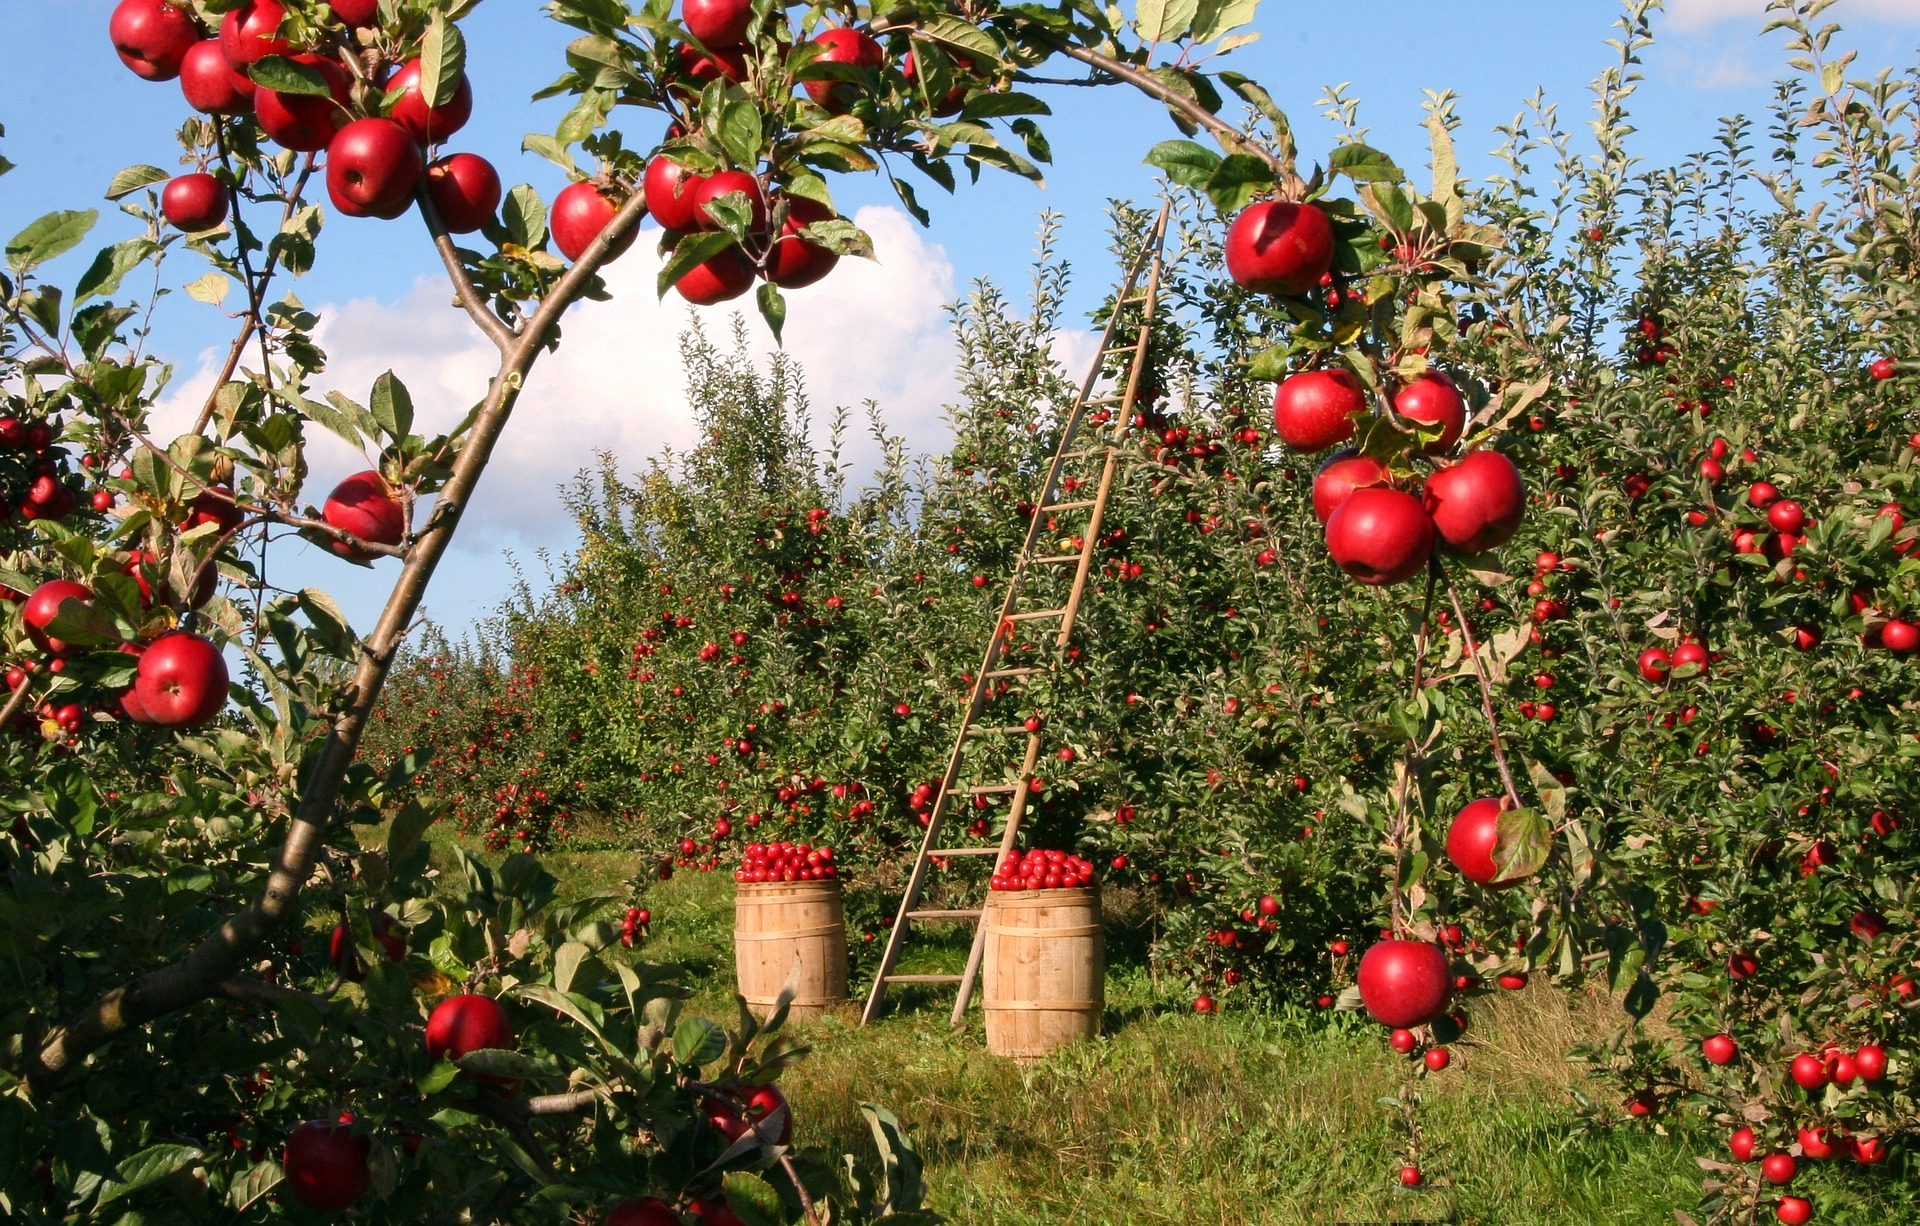 an apple orchard with red apples in the trees and in barrels beneath the trees